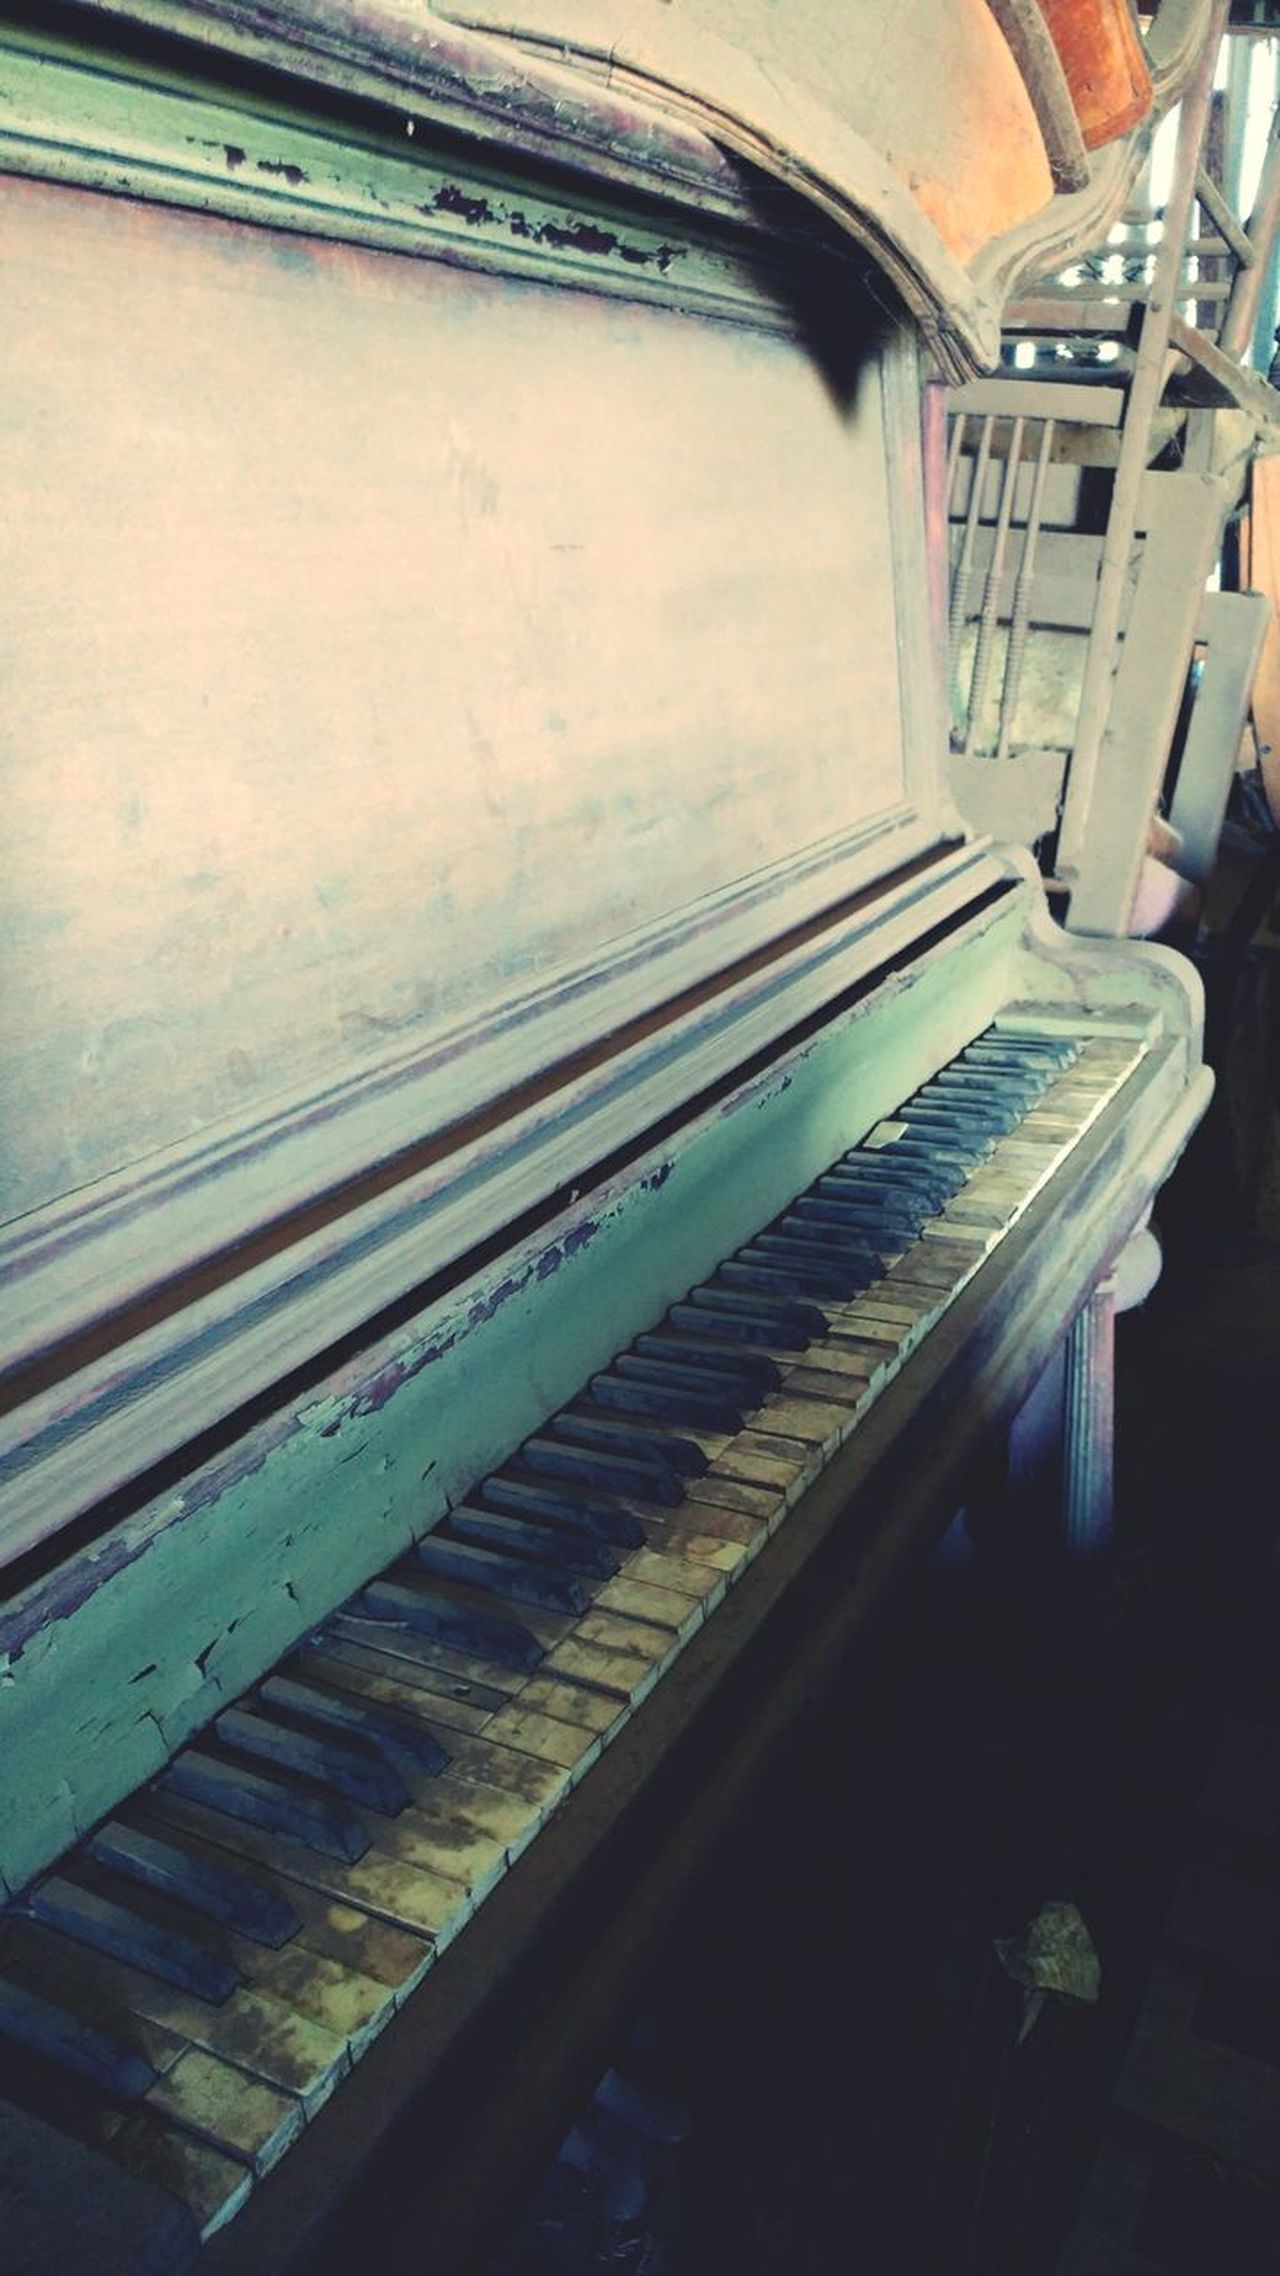 No People Indoors  Storage Piano Dusty